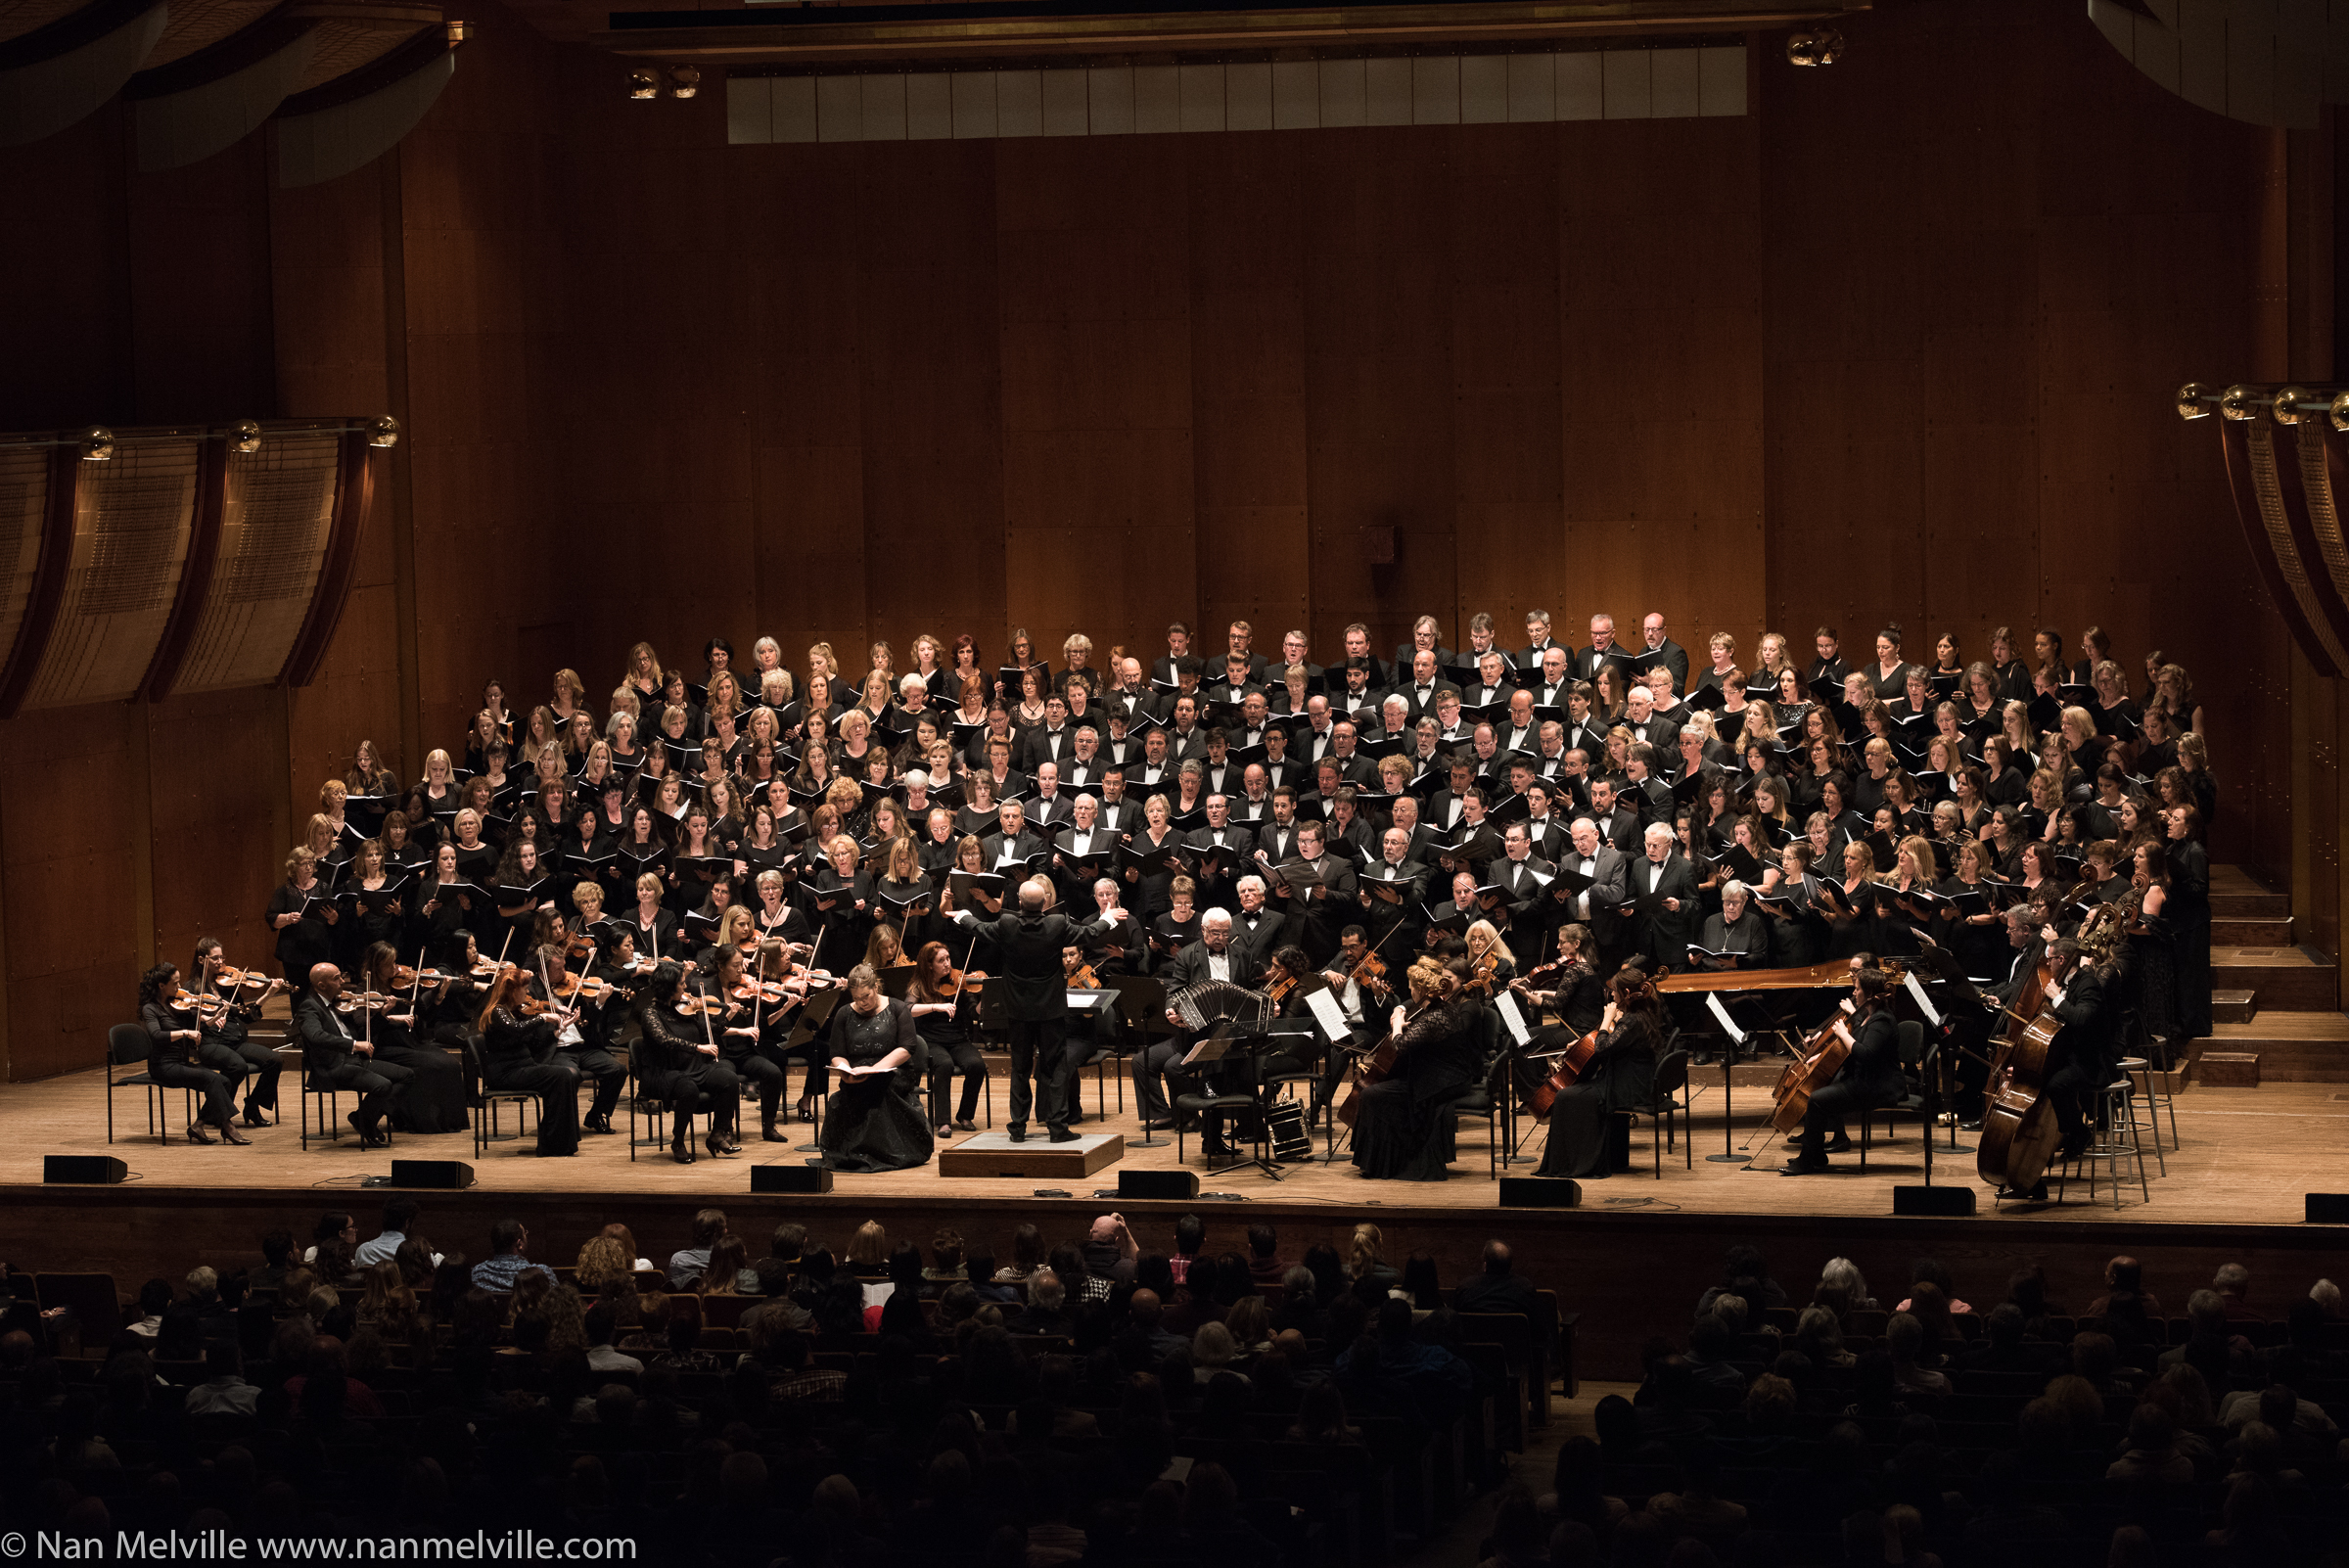 Distinguished Concerts International New York (DCINY) presents Viva La Musica de Argentina in Review